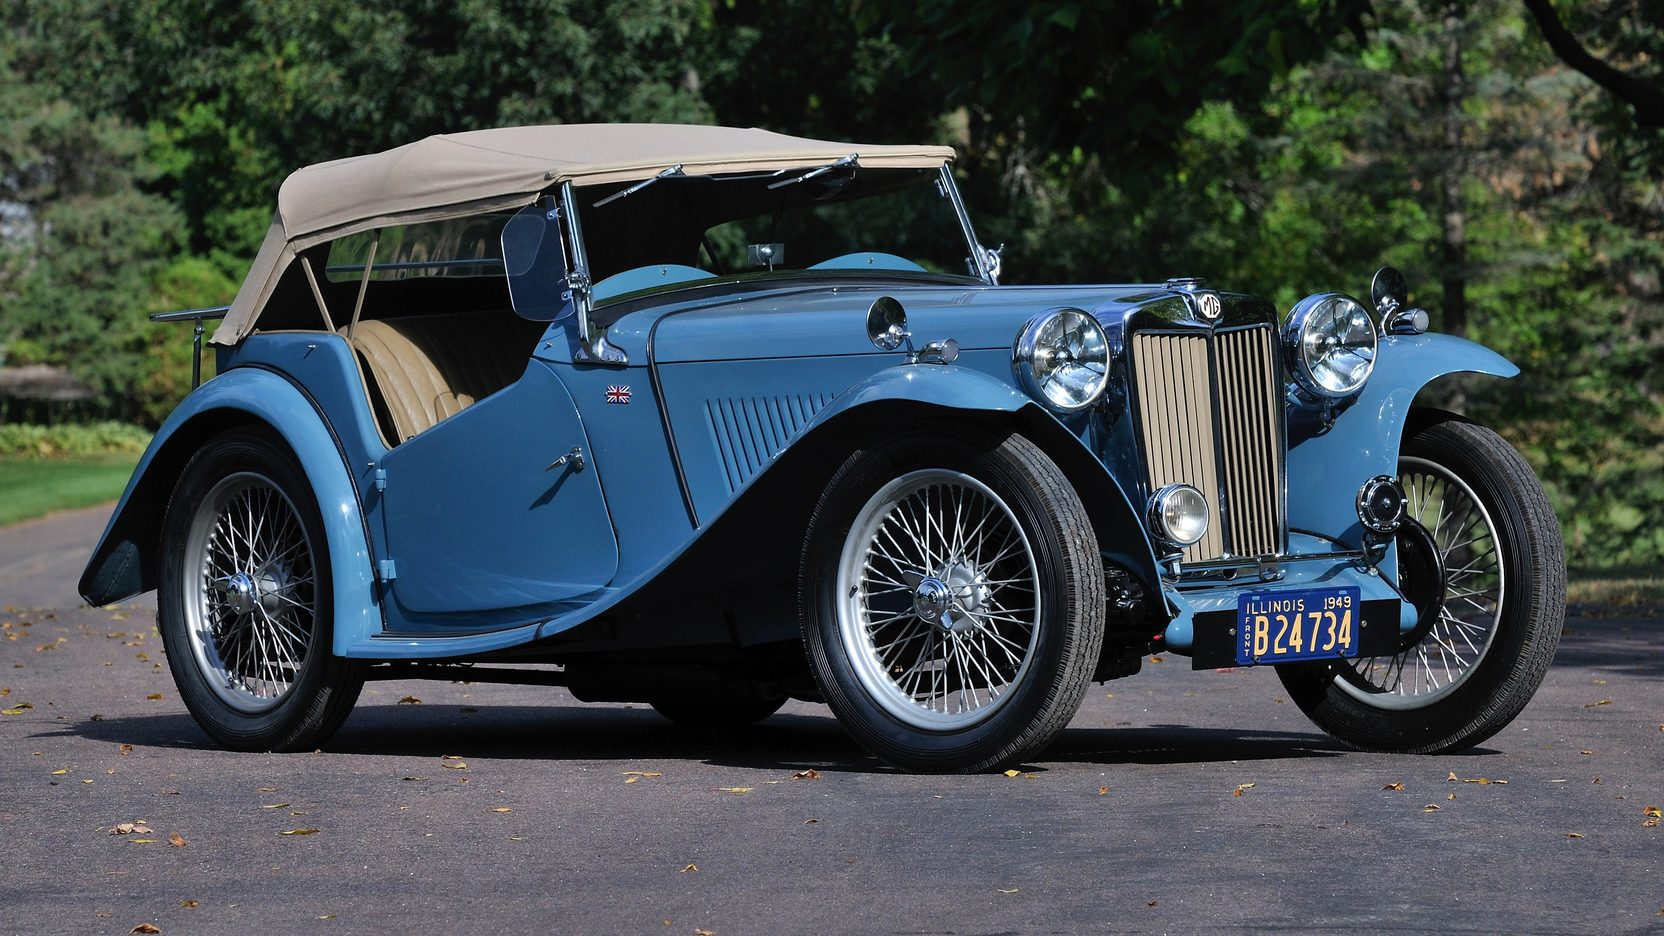 Can you solve the mystery of this 1949 MG TC?